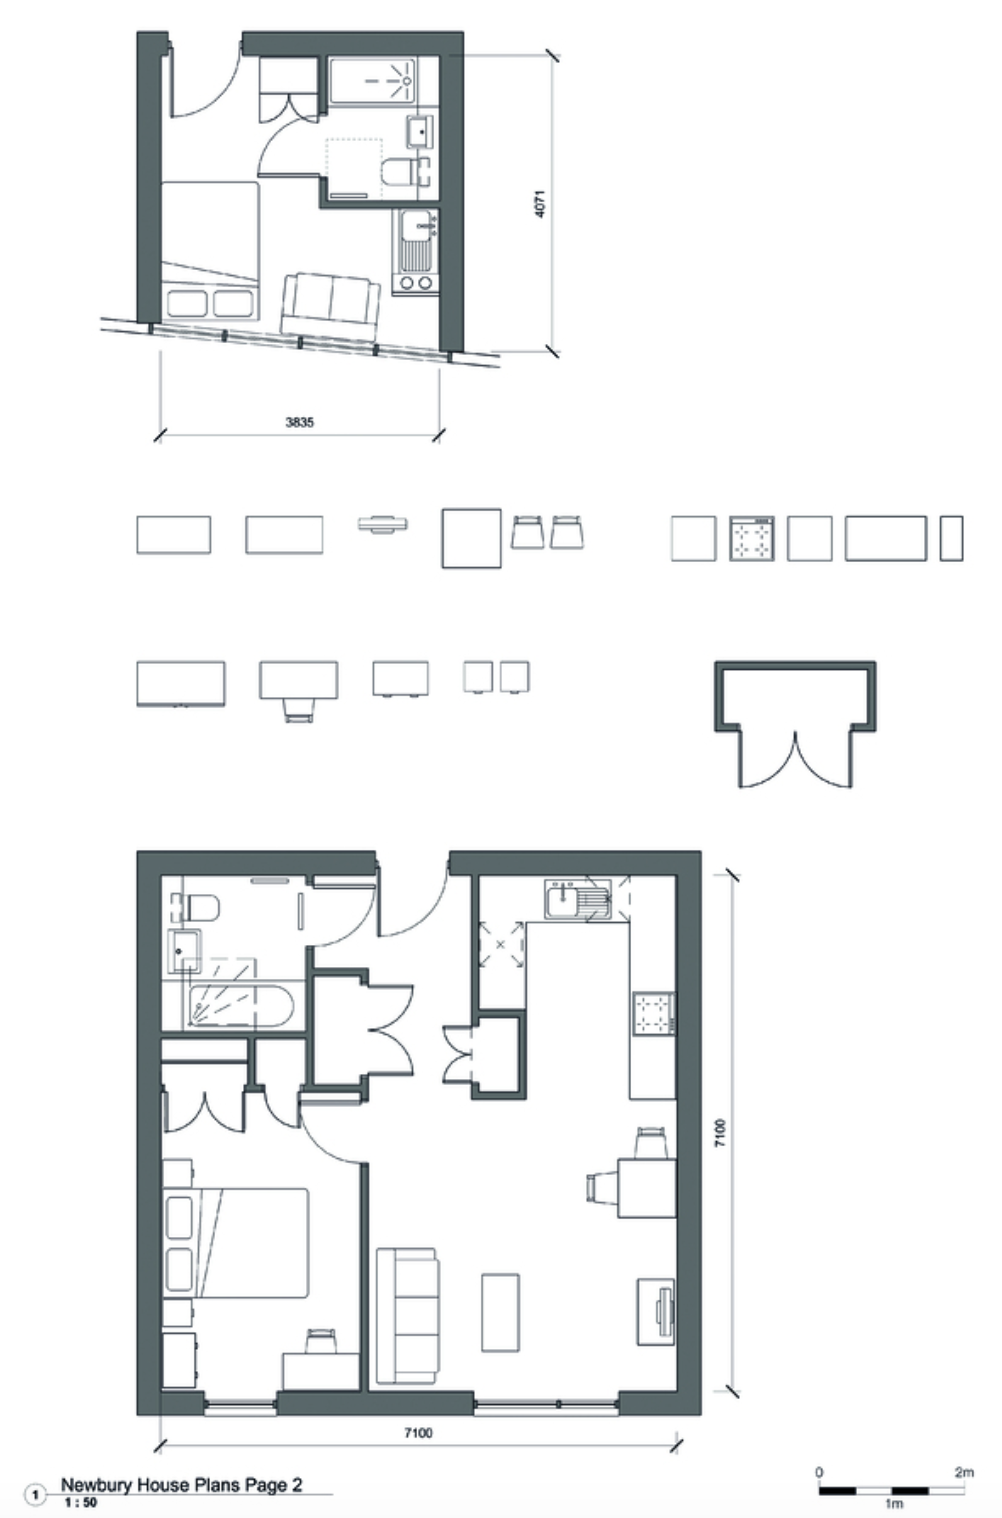 Comparison of a two-person studio in Newbury House compared to the space standard equivalent